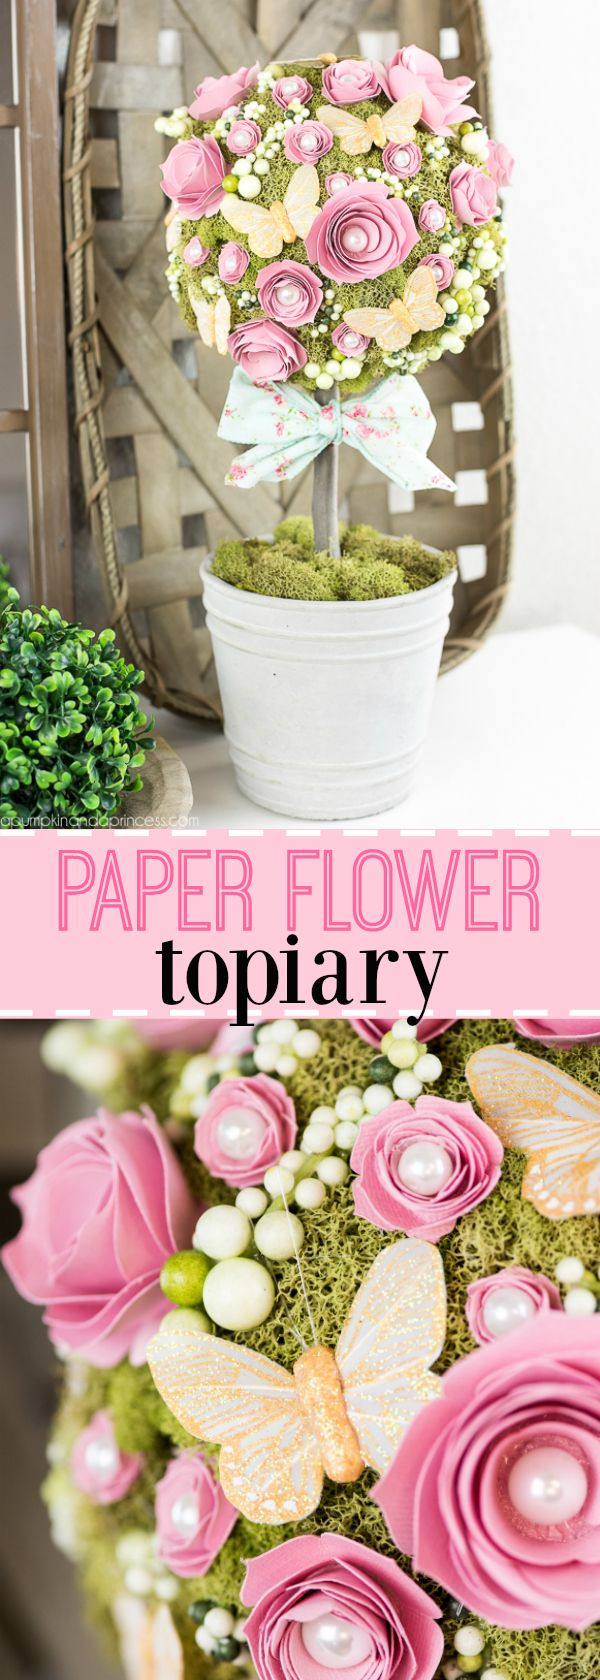 How to make a paper flower topiary.